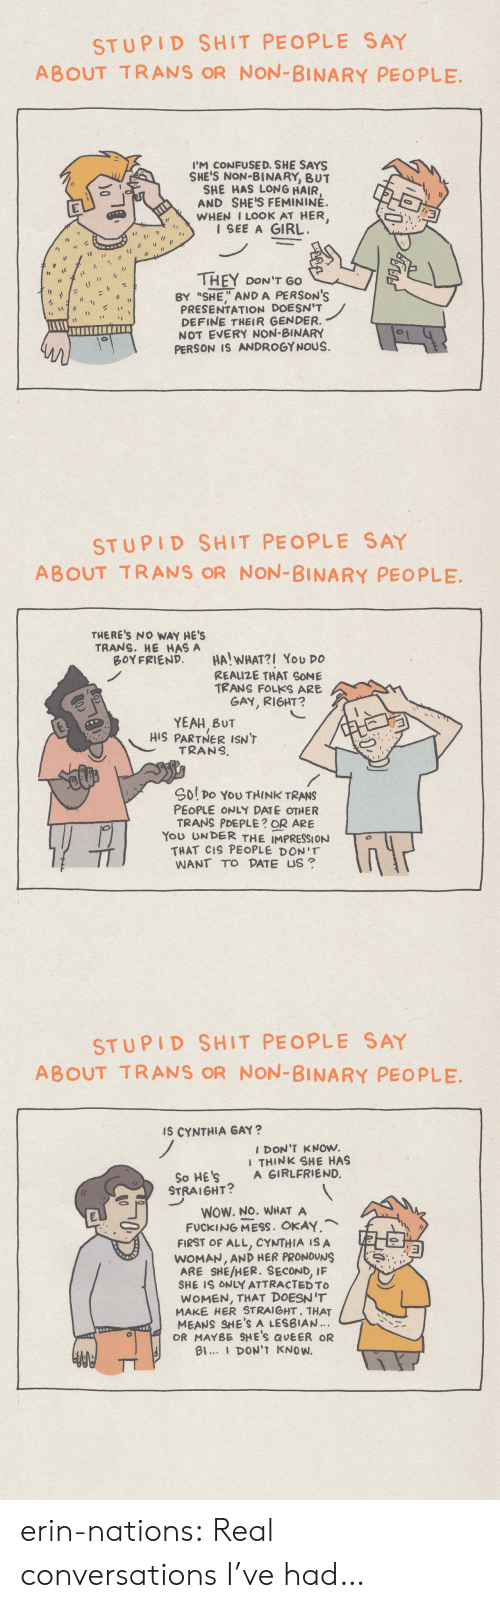 "Fucking, Shit, and Tumblr: STUPID SHIT PEOPLE SAY  ABOUT TRANS OR NON-BINARY PEOPLE  I'M CONFUSE D. SHE SAYS  SHE'S NON-BINARY, BUT  SHE HAS LONG HAIR  AND SHE'S FEMININÉ.  WHEN I LOOK AT HER,  1 SEE A GIRL  THEY DON'T GO  BY ""SHE"" AND A PERSON'S  PRESENTATION DOESN'T  DEFINE THEIR GENDER.  NOT EVERY NON-BINARY  PERSON IS ANDROGYNOUS.  1  0   STUPID SHIT PEOPLE SAY  ABOUT TRANS OR NON-BINARY PEOPLE  THERE'S NO WAY HE'S  TRANS. HE HAS A  BOYFRIEND  HA! WHAT?I You DO  REAIZE THAT SOME  TRANS FOLKS ARE  GAY, RIGHT?  YEAH BUT  HIS PARTNER ISN'T  TRANS  Sol po YoU THINK TRANS  PEOPLE ONLY DATE OTHER  TRANS PDEPLE? OR ARE  You UNDER THE IMPRESSION  THAT CIS PEOPLE DON'T  WANT TO DATE US   STUPID SHIT PEOPLE SAY  ABOUT TRANS OR NON-BINARY PEOPLE  Is CYNTHIA GAY?  I DON'T KNOW.  I THINK SHE HAS  A GIRLFRIEND.  So HE'S  STRAIGHT?  WOW. NO. WHAT A  FUCKING MESS. OKAY,  FIRST OF ALL, CYNTHIA IS A  WOMAN, AND HER PRONOUNS  IF  ARE SHE/HER. SECOND,  SHE IS ONLY ATTRACTED TO  WOMEN, THAT DOESN'T  MAKE HER STRAIGHT, THAT  MEANS SHE'S A LESBIAN.  OR MAYBE SHE'S QUEER OR  Bl... DON'T KNOW. erin-nations:  Real conversations I've had…"